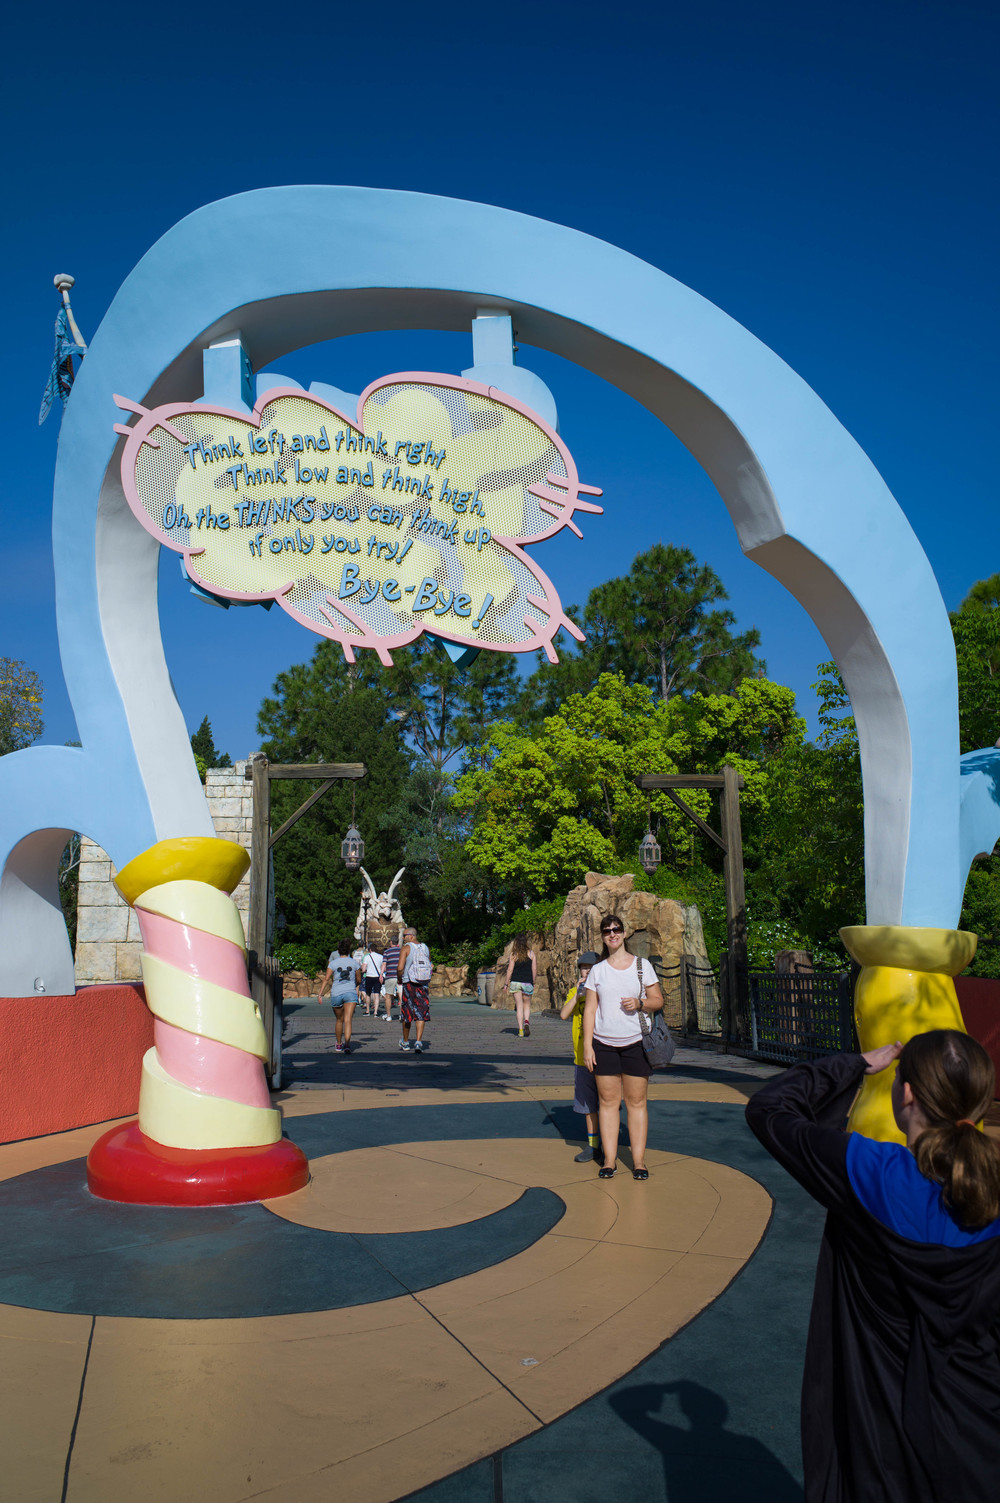 Dr. Seuss Land